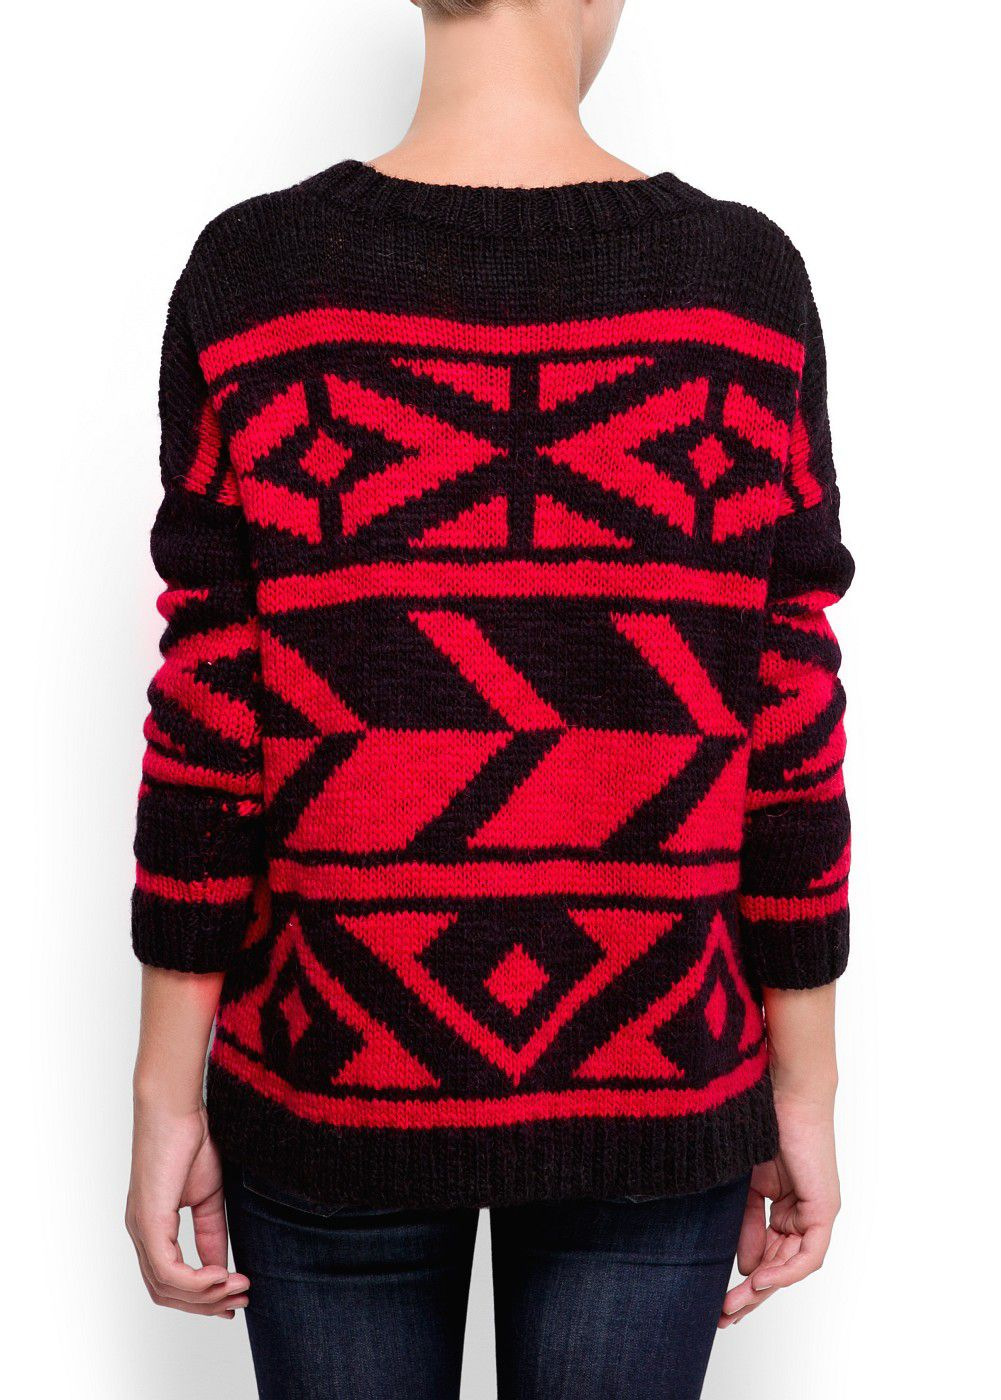 Oversized jumper borders